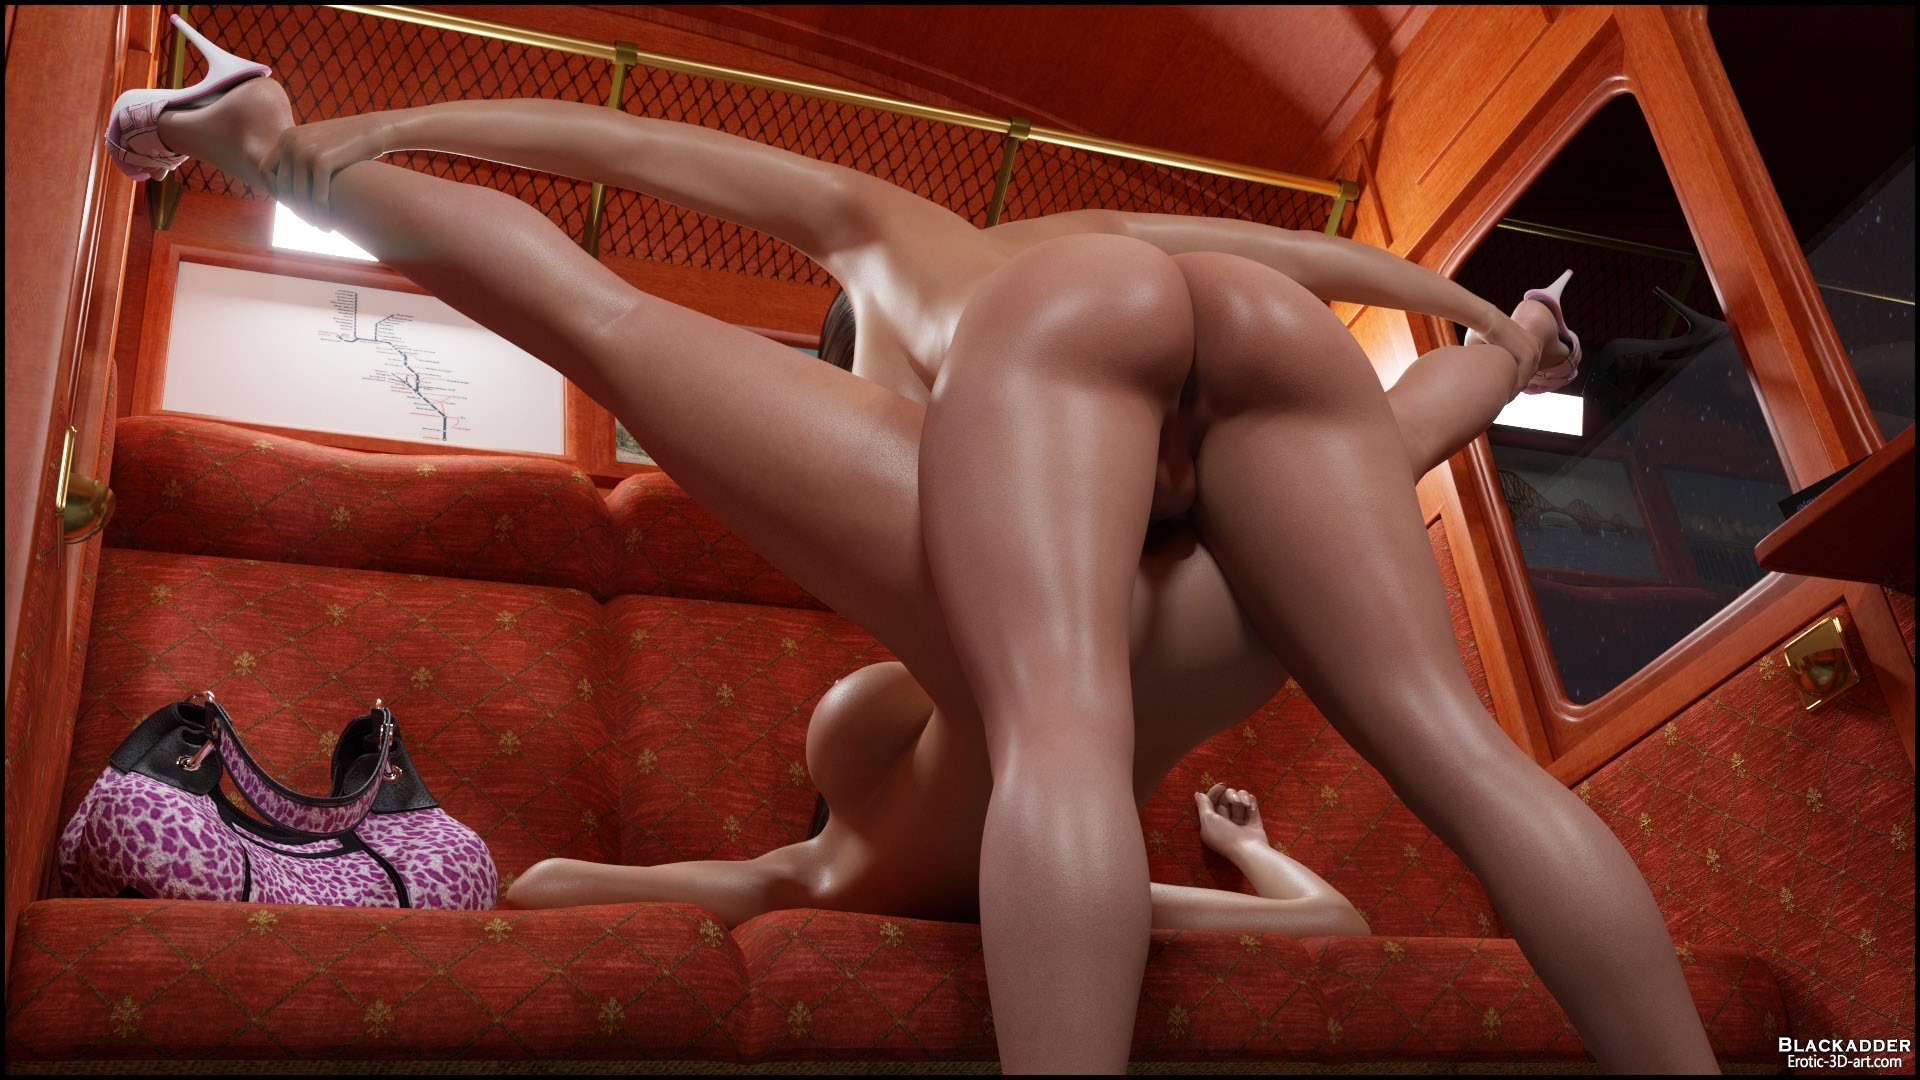 3d porn pictures in train smut video